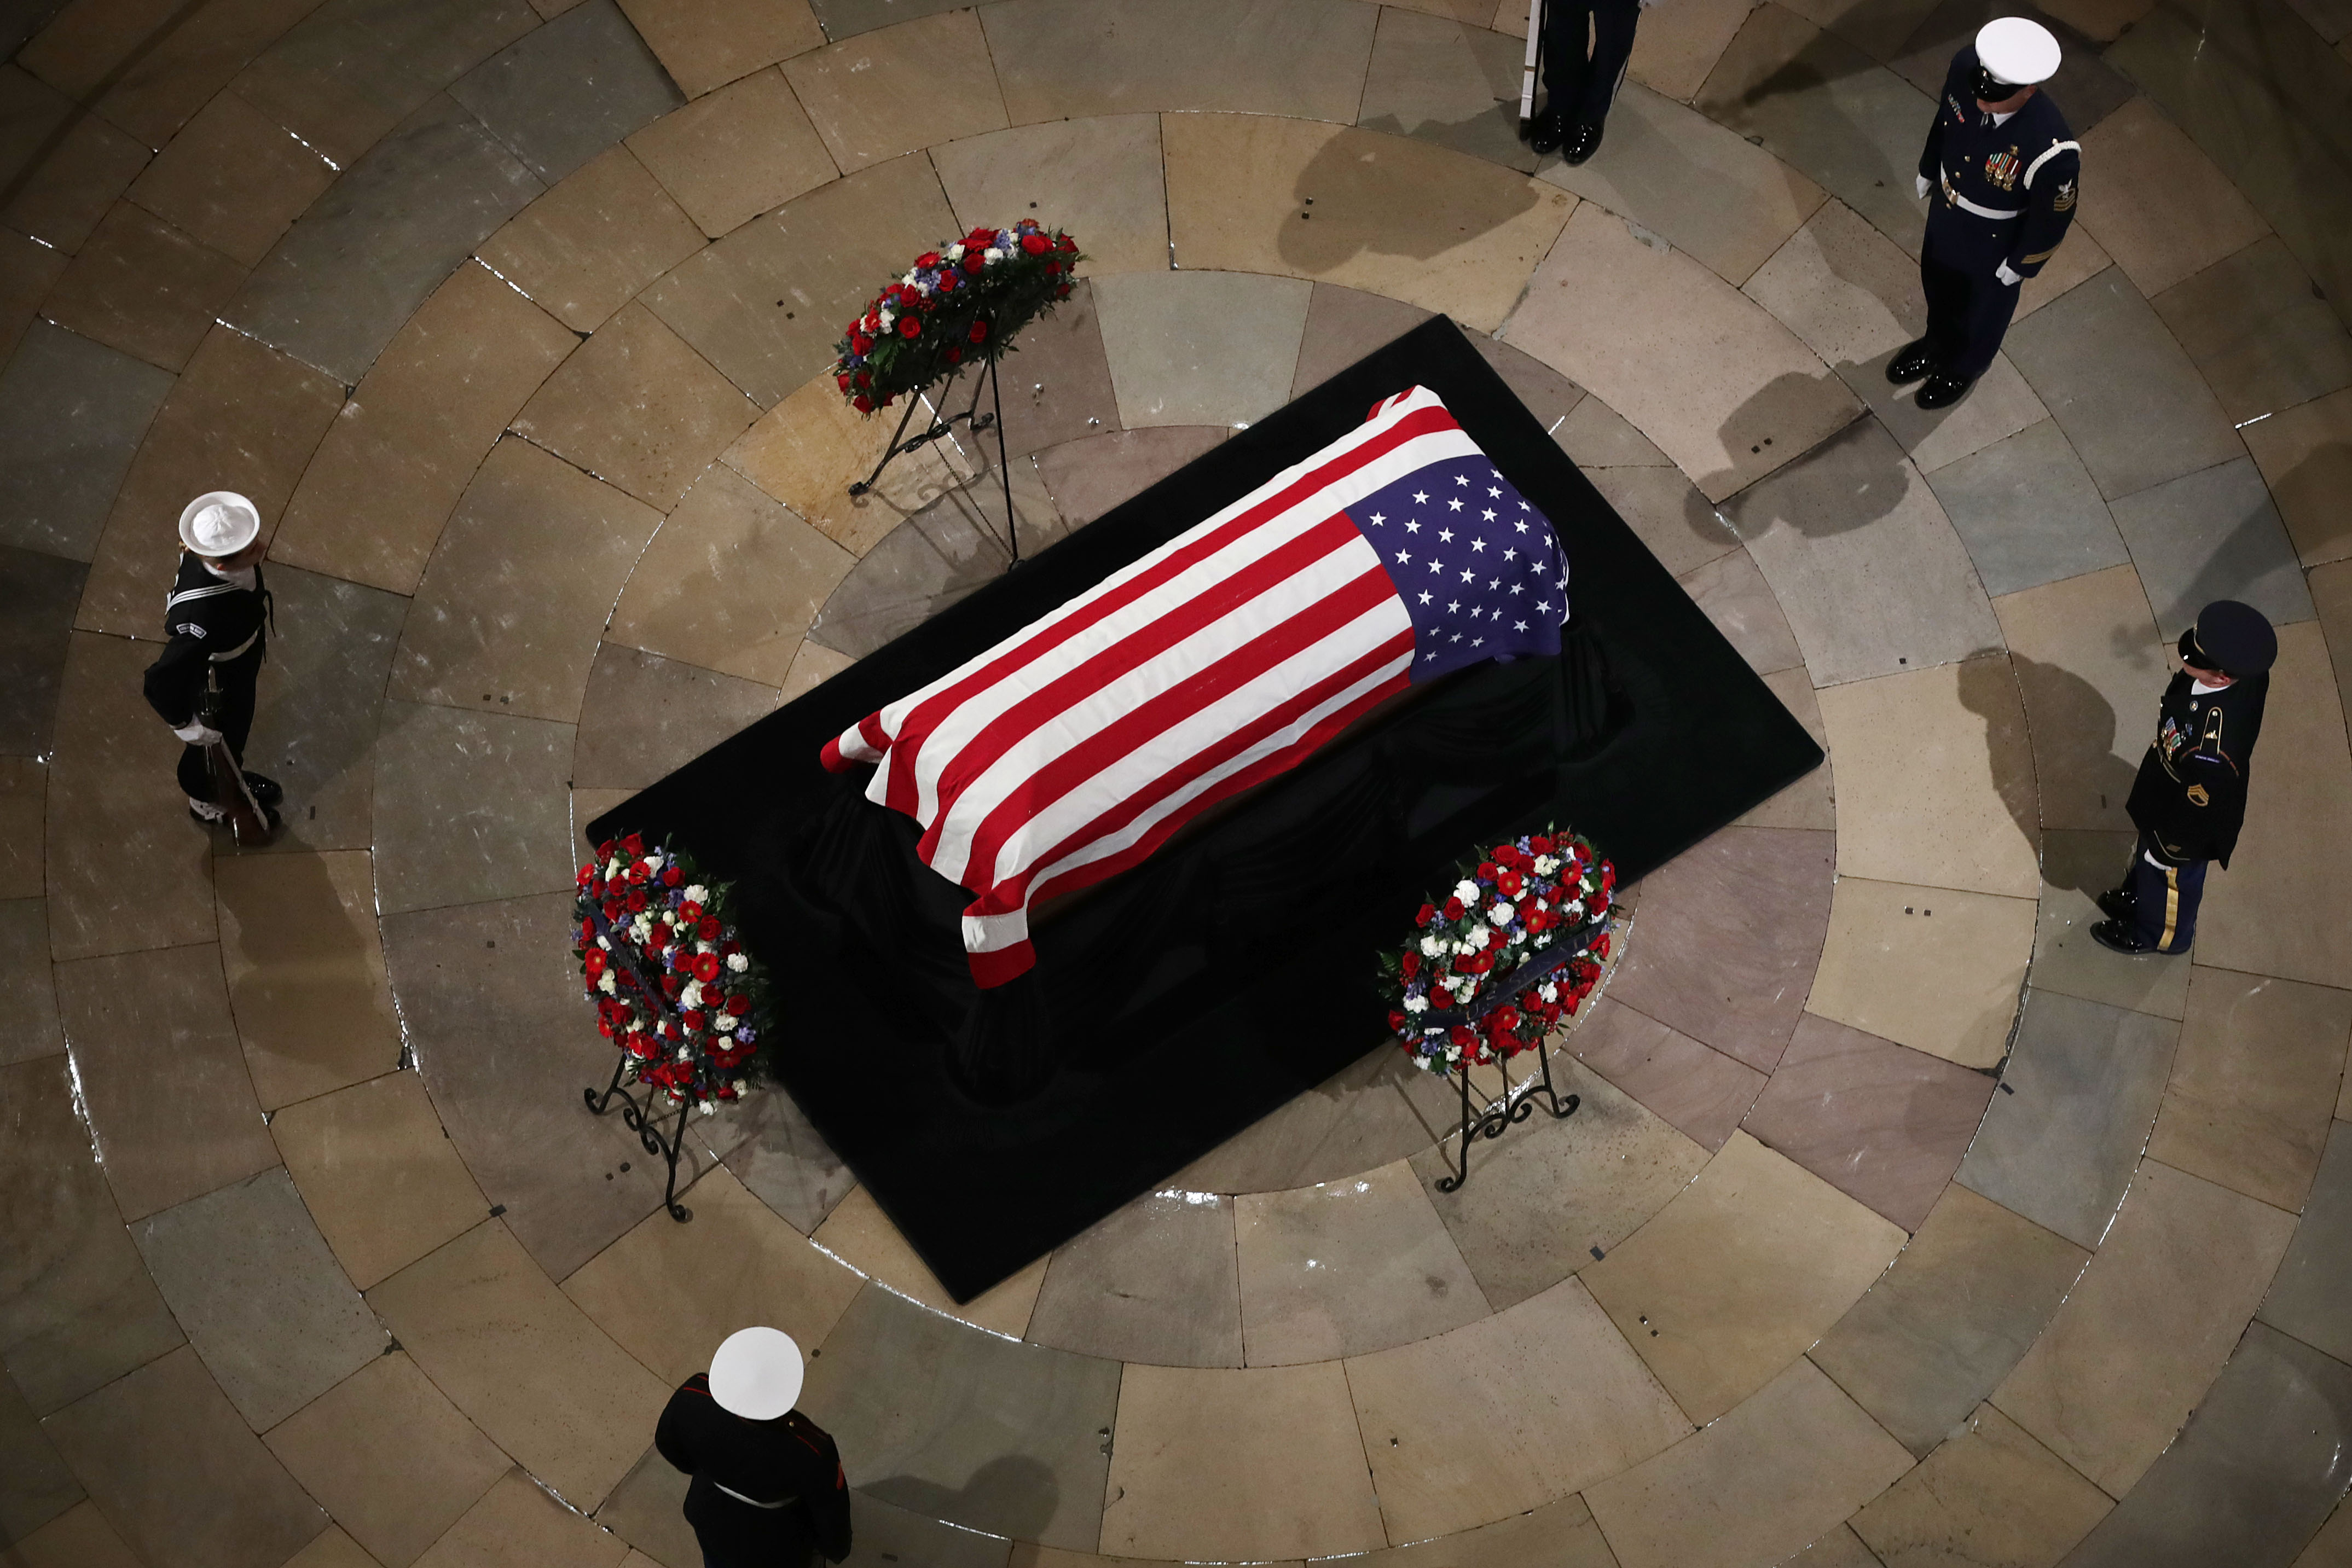 A US military honor guard stands watch as former U.S. President George H.W. Bush lies in state in the US Capitol Rotunda Dec.3, 2018 in Washington, DC.